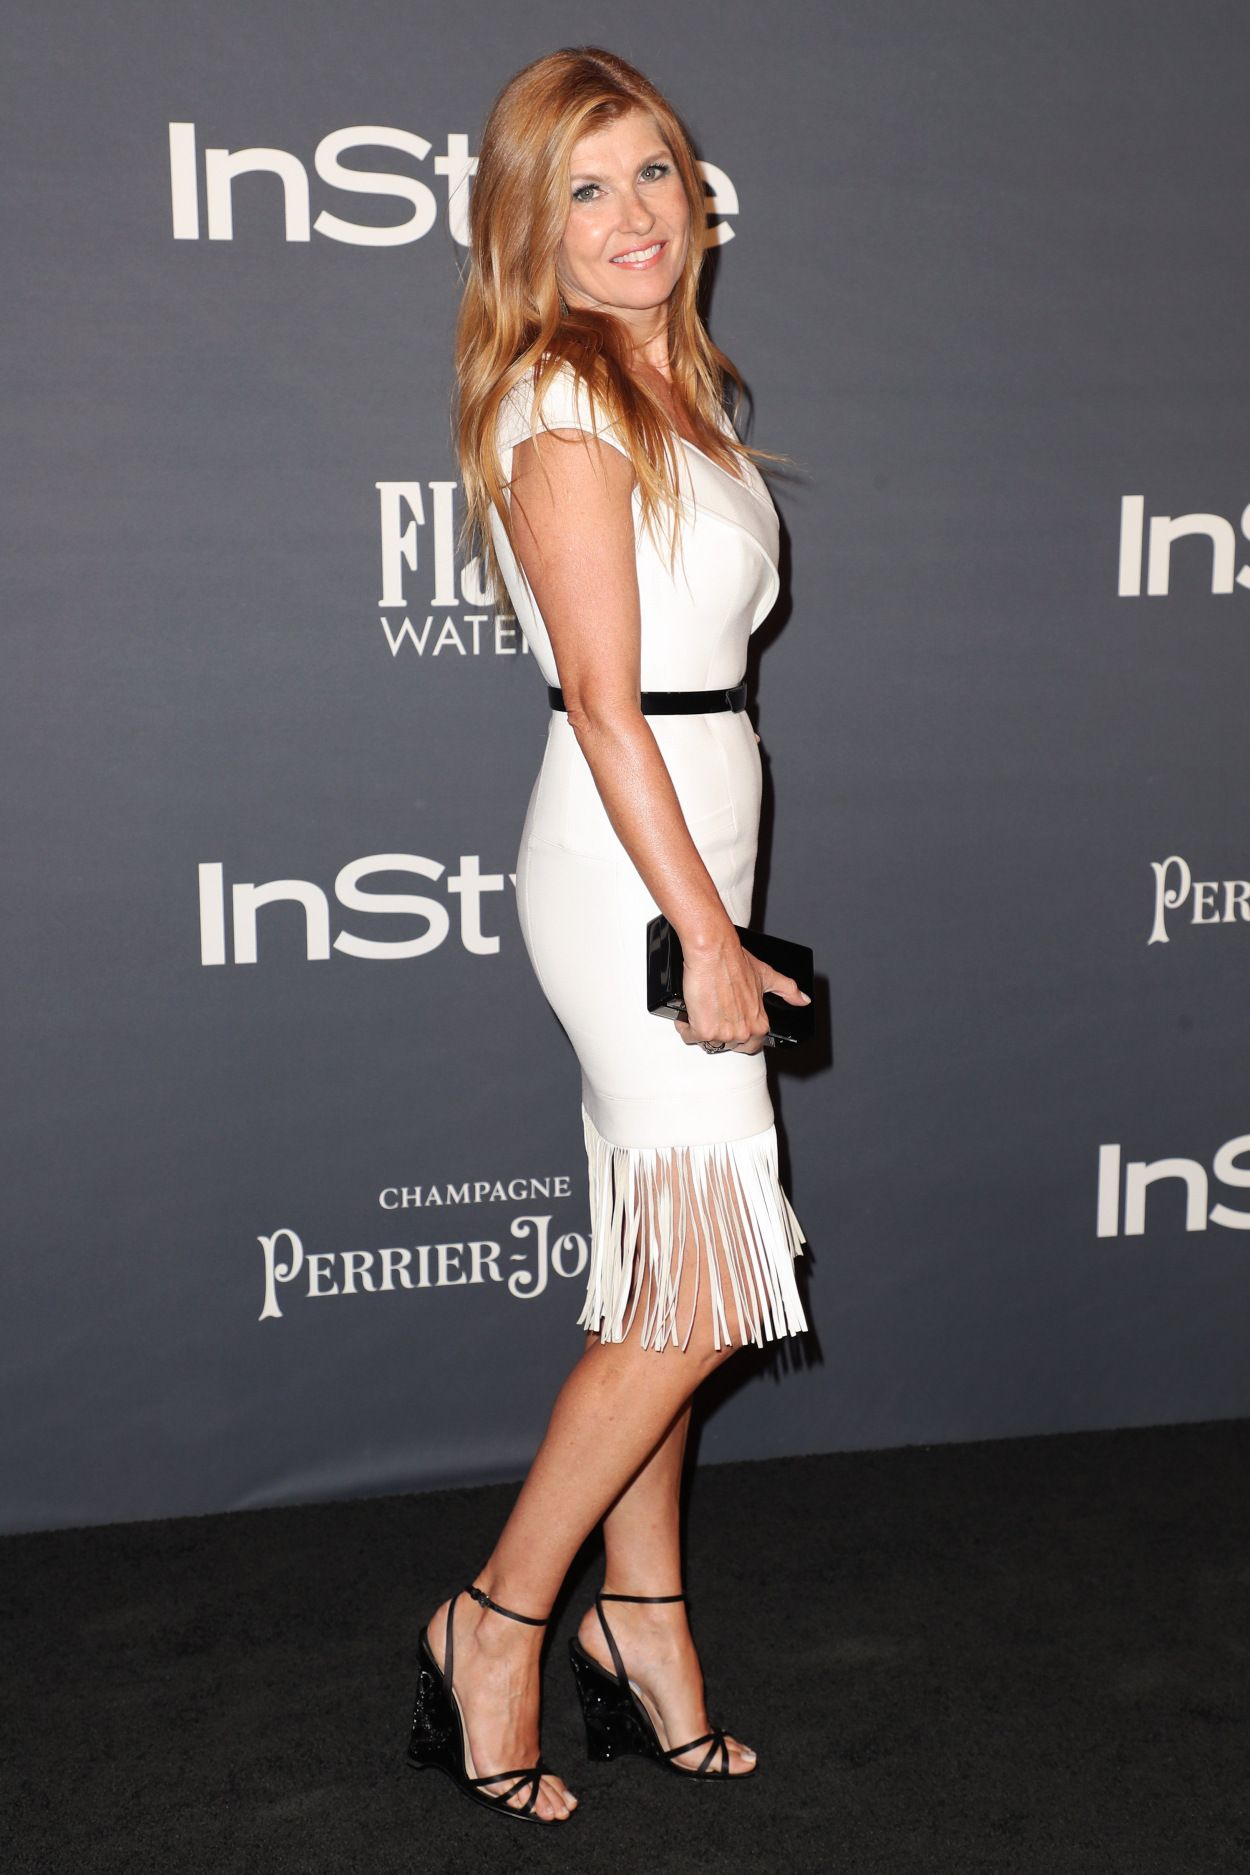 efec5791143f Connie Britton nice legs in a little white dress with bottom fringe and  ankle strap high heels